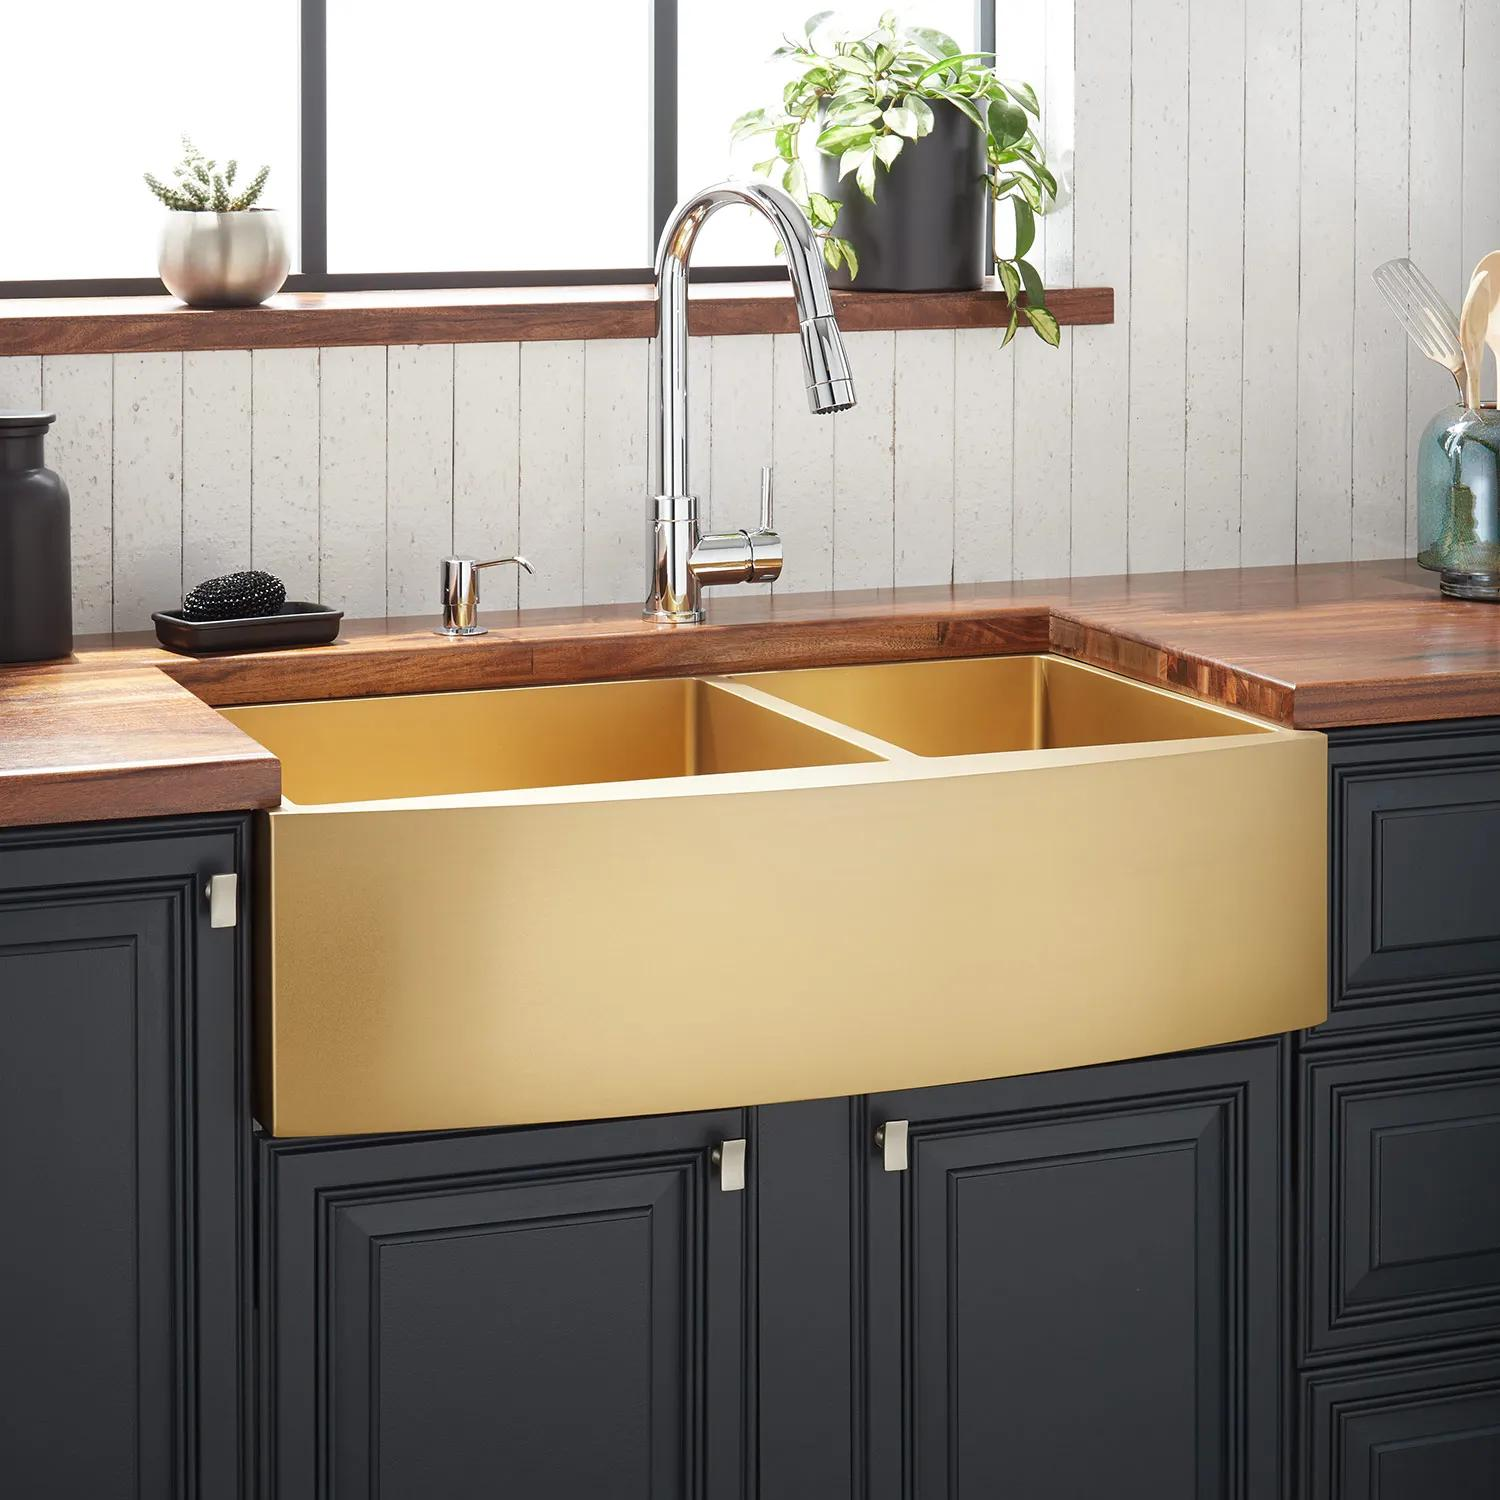 36 Atlas 60 40 Offset Double Bowl Stainless Steel Farmhouse Sink Curved Apron Matte Gold Kitchen